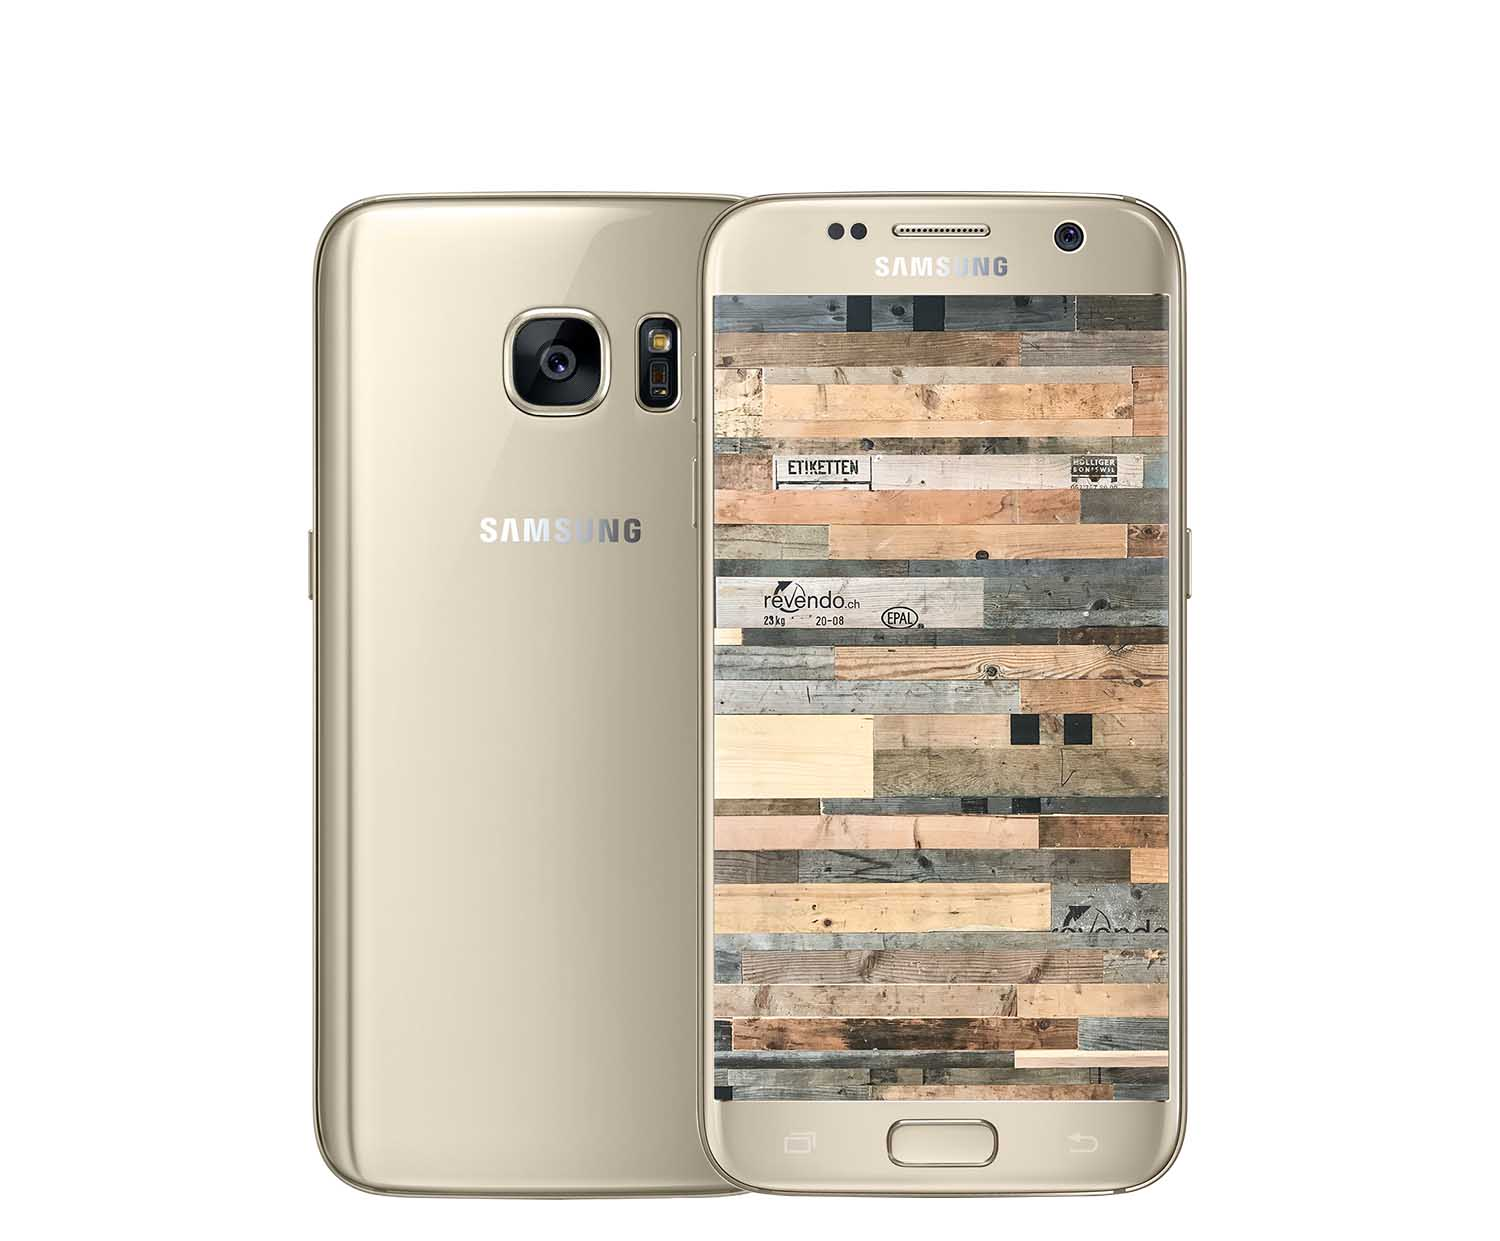 samsung galaxy s7 32 gb gold. Black Bedroom Furniture Sets. Home Design Ideas